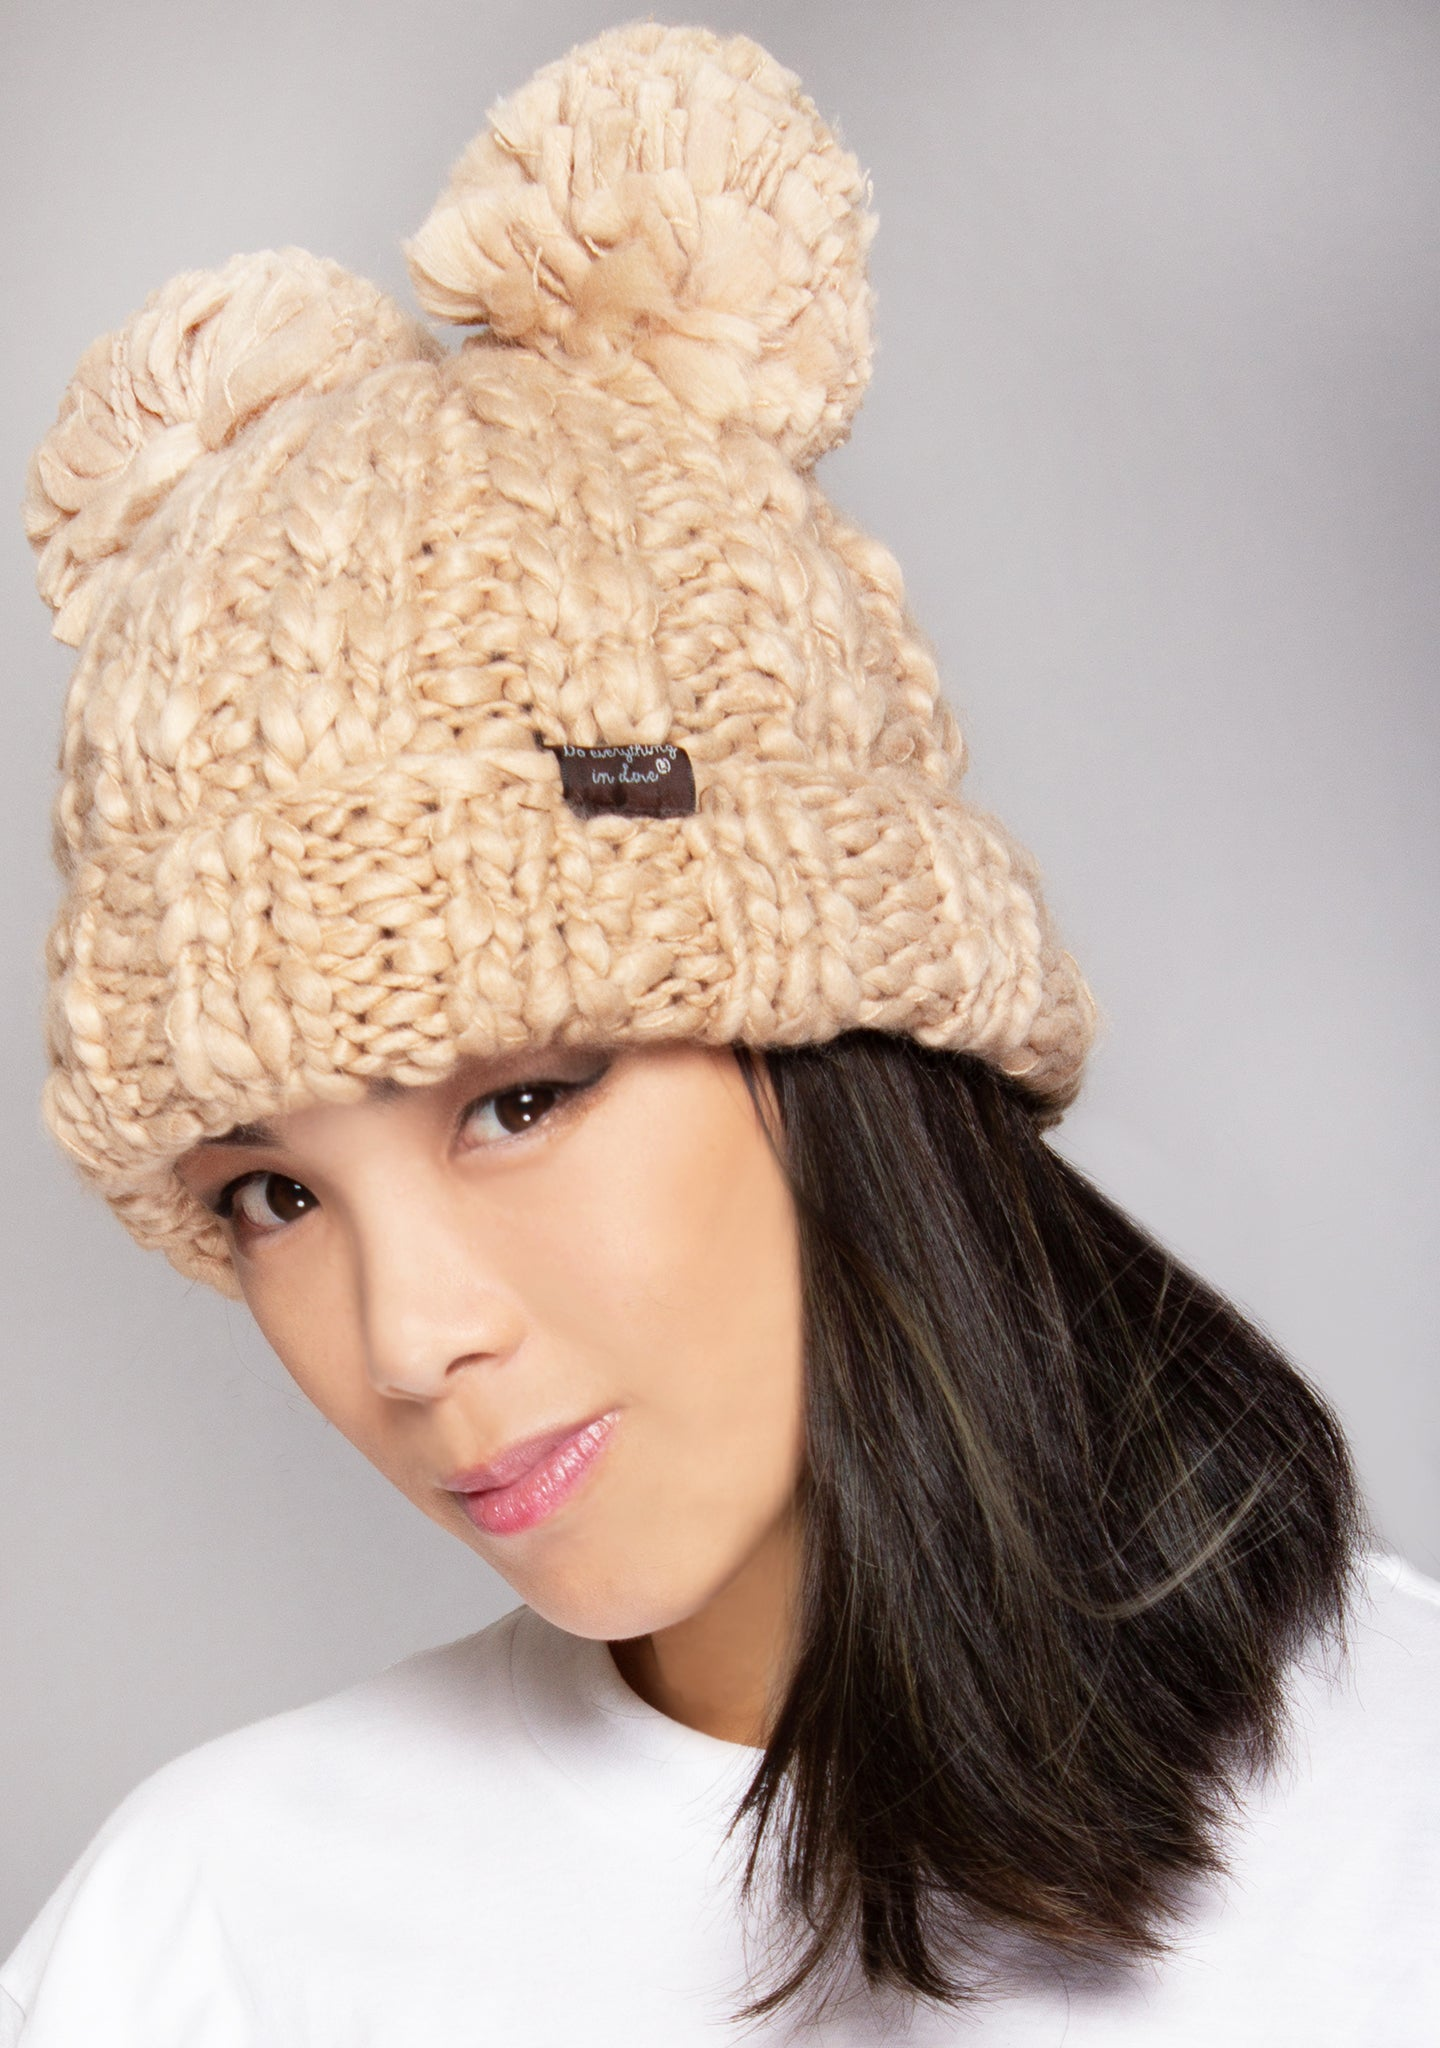 Teddy Bear Knit Beanie in Camel